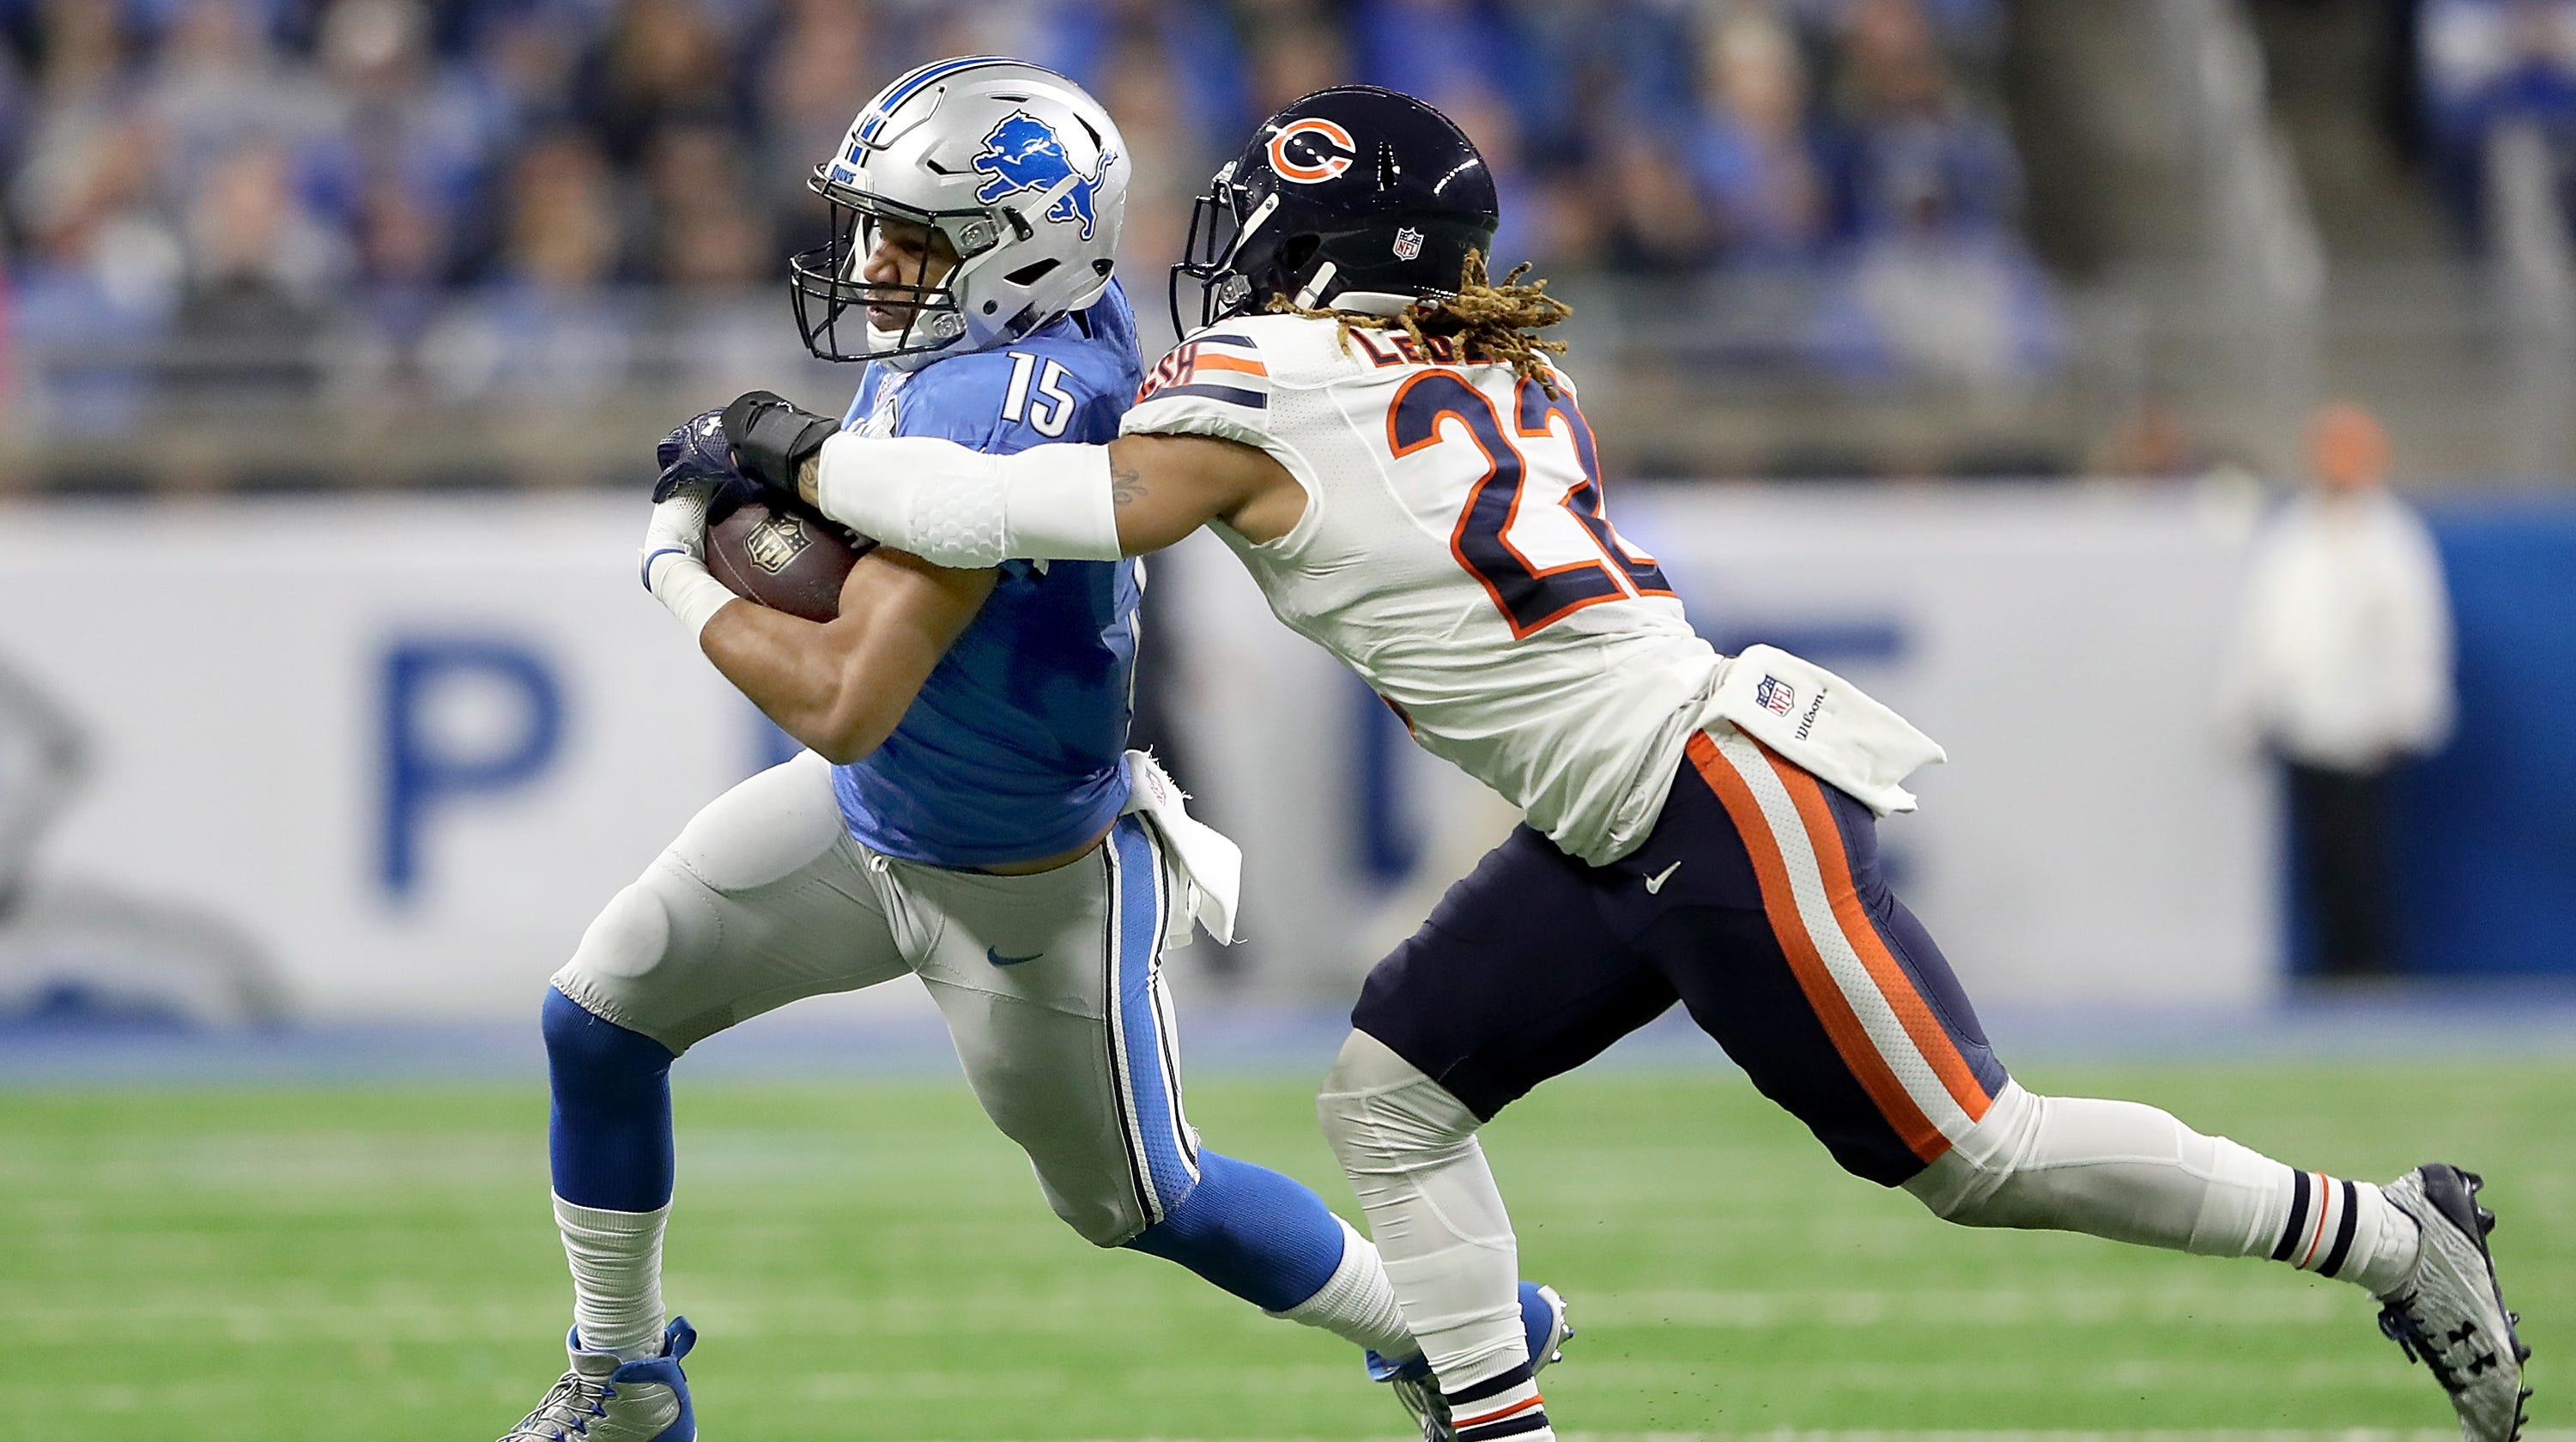 low cost 3abe8 106ab Lions sign Cre'Von LeBlanc off practice squad, waive Hakeem ...